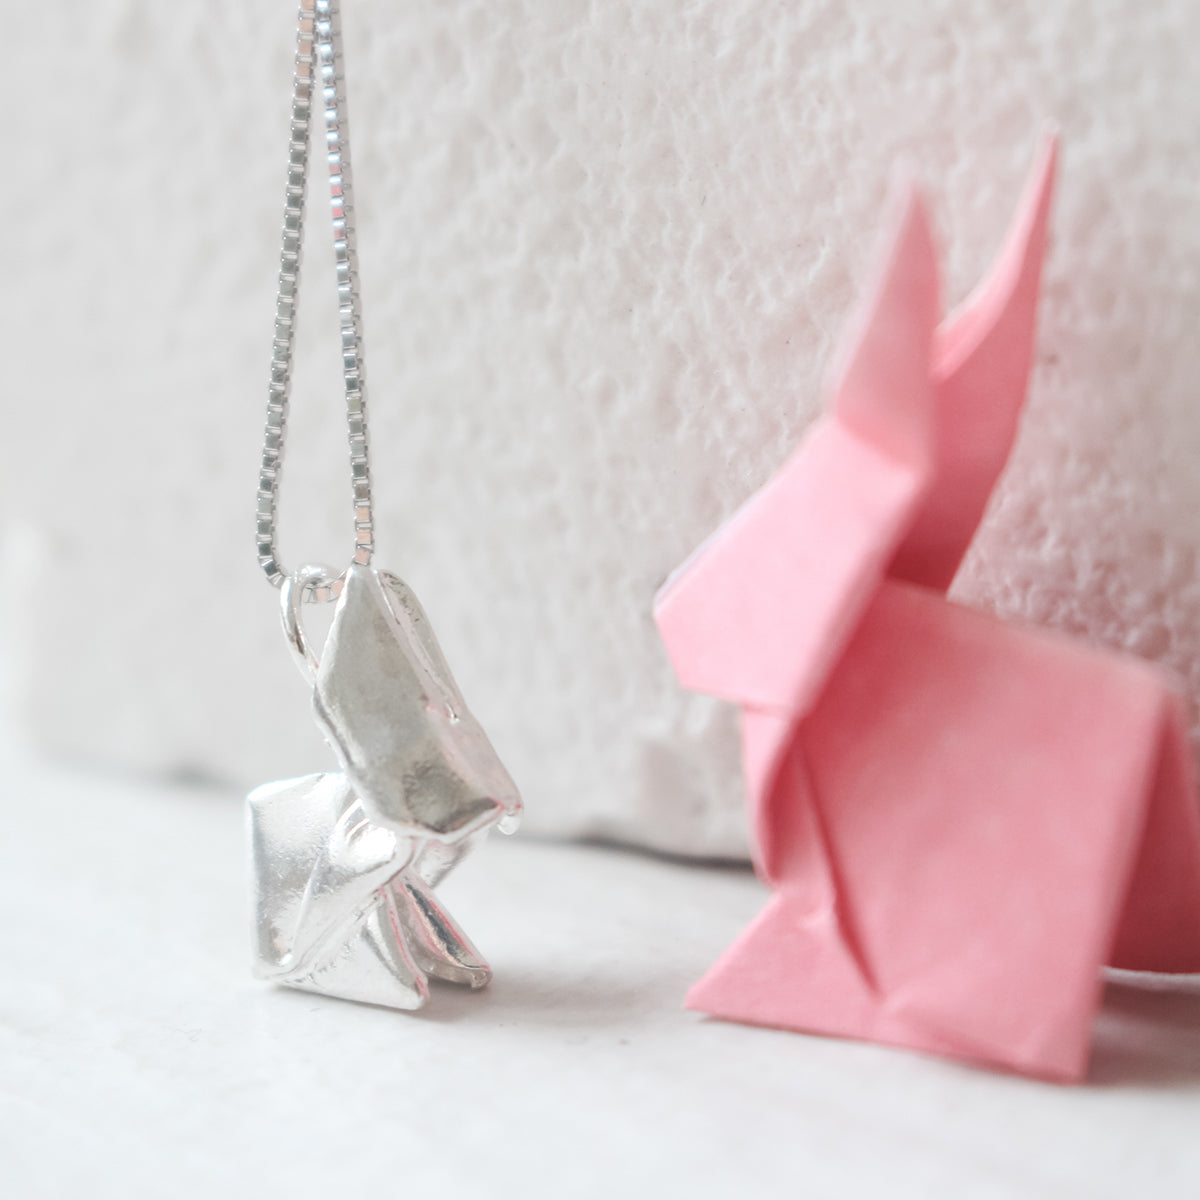 Origami Rabbit Silver Necklace/Silver Rabbit Necklace/Silver Bunny Necklace/Paper-folded Bunny Necklace